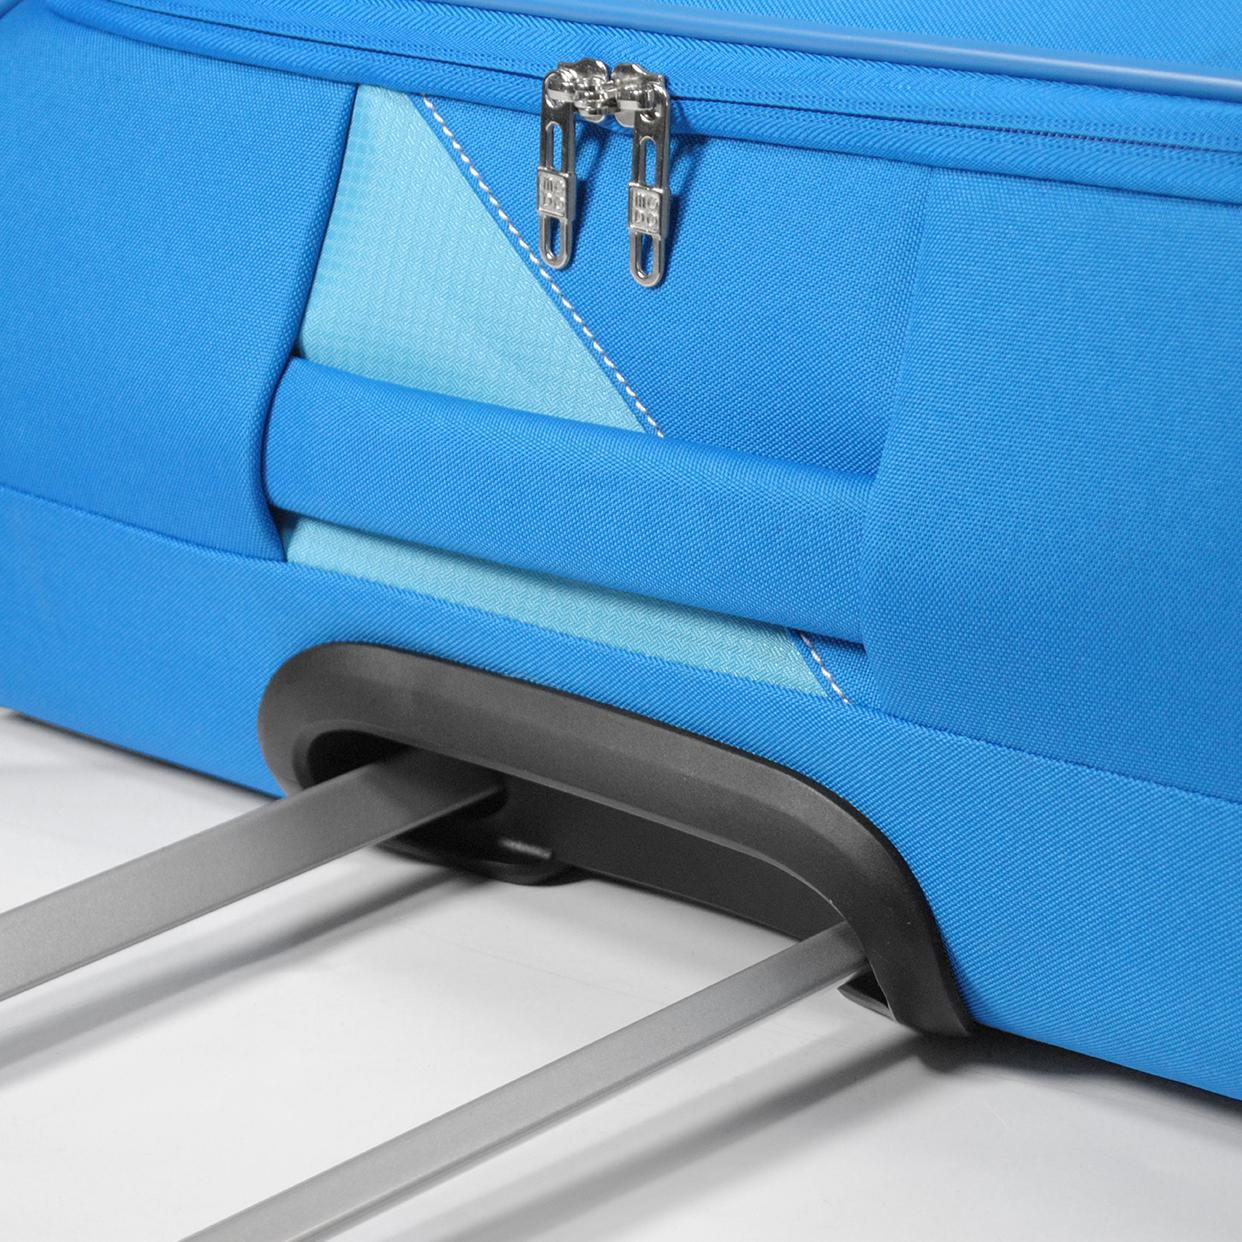 Large Luggage  SKY Modo by Roncato